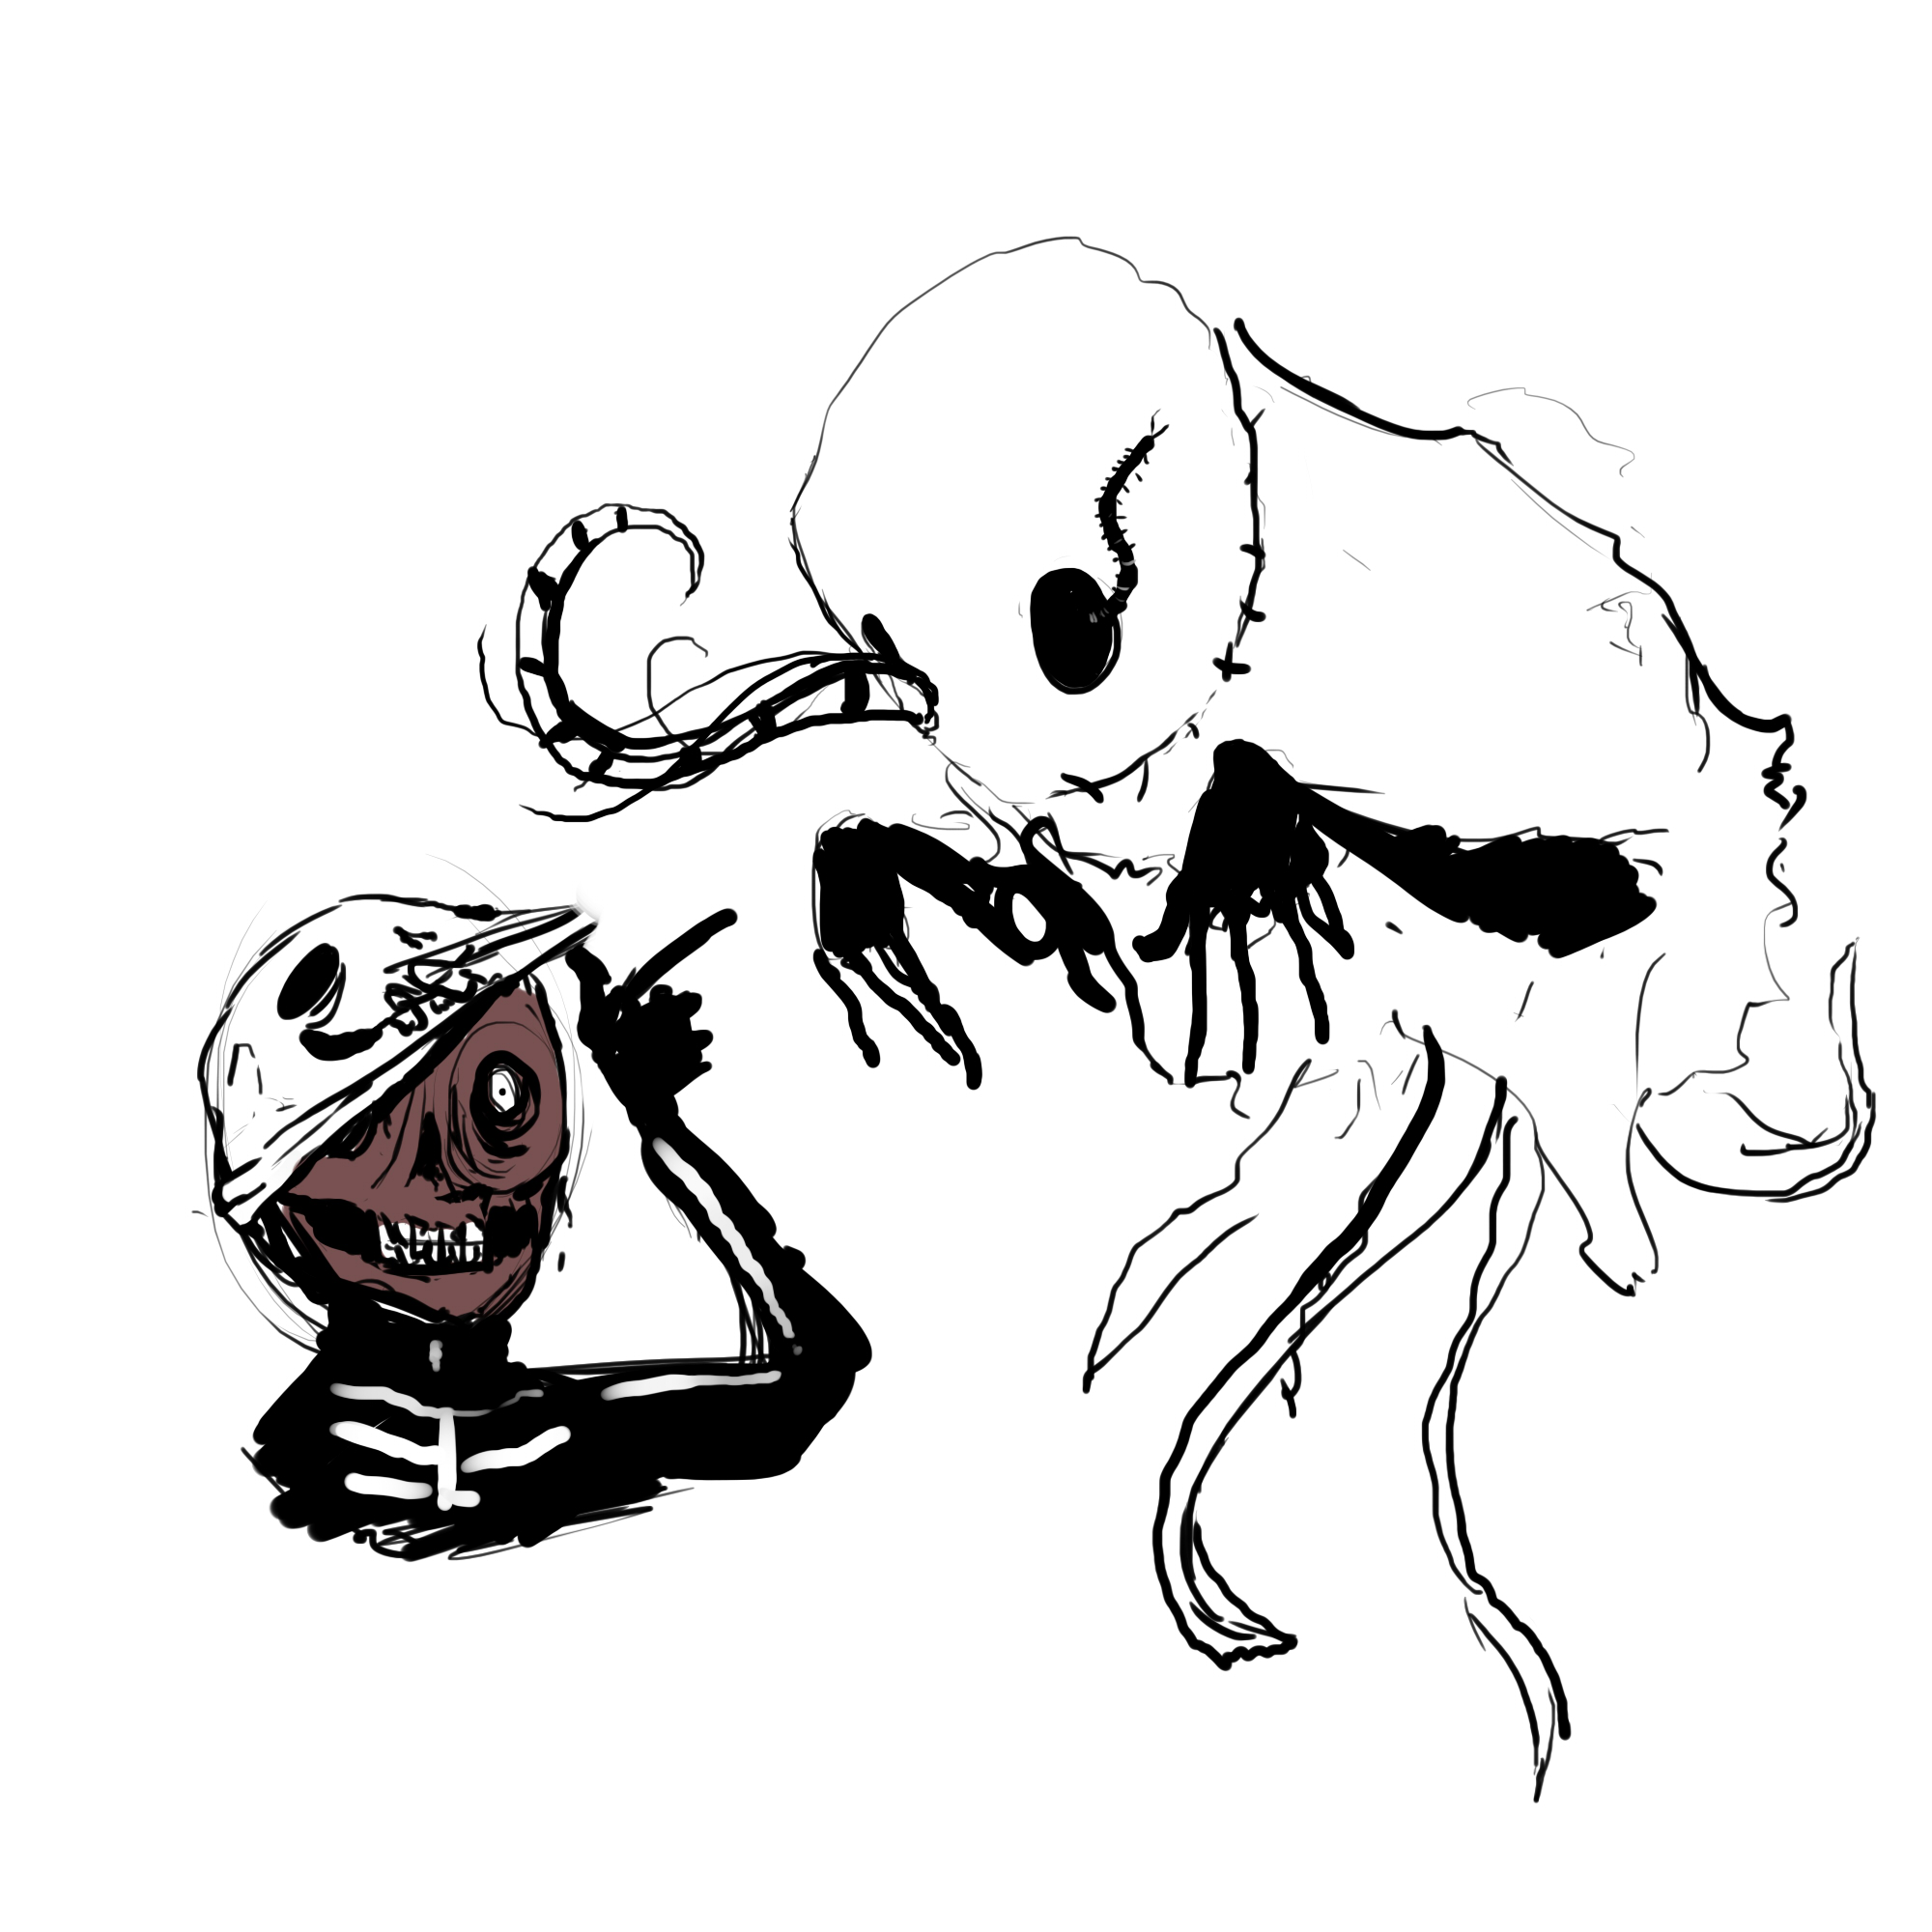 more geist sketches